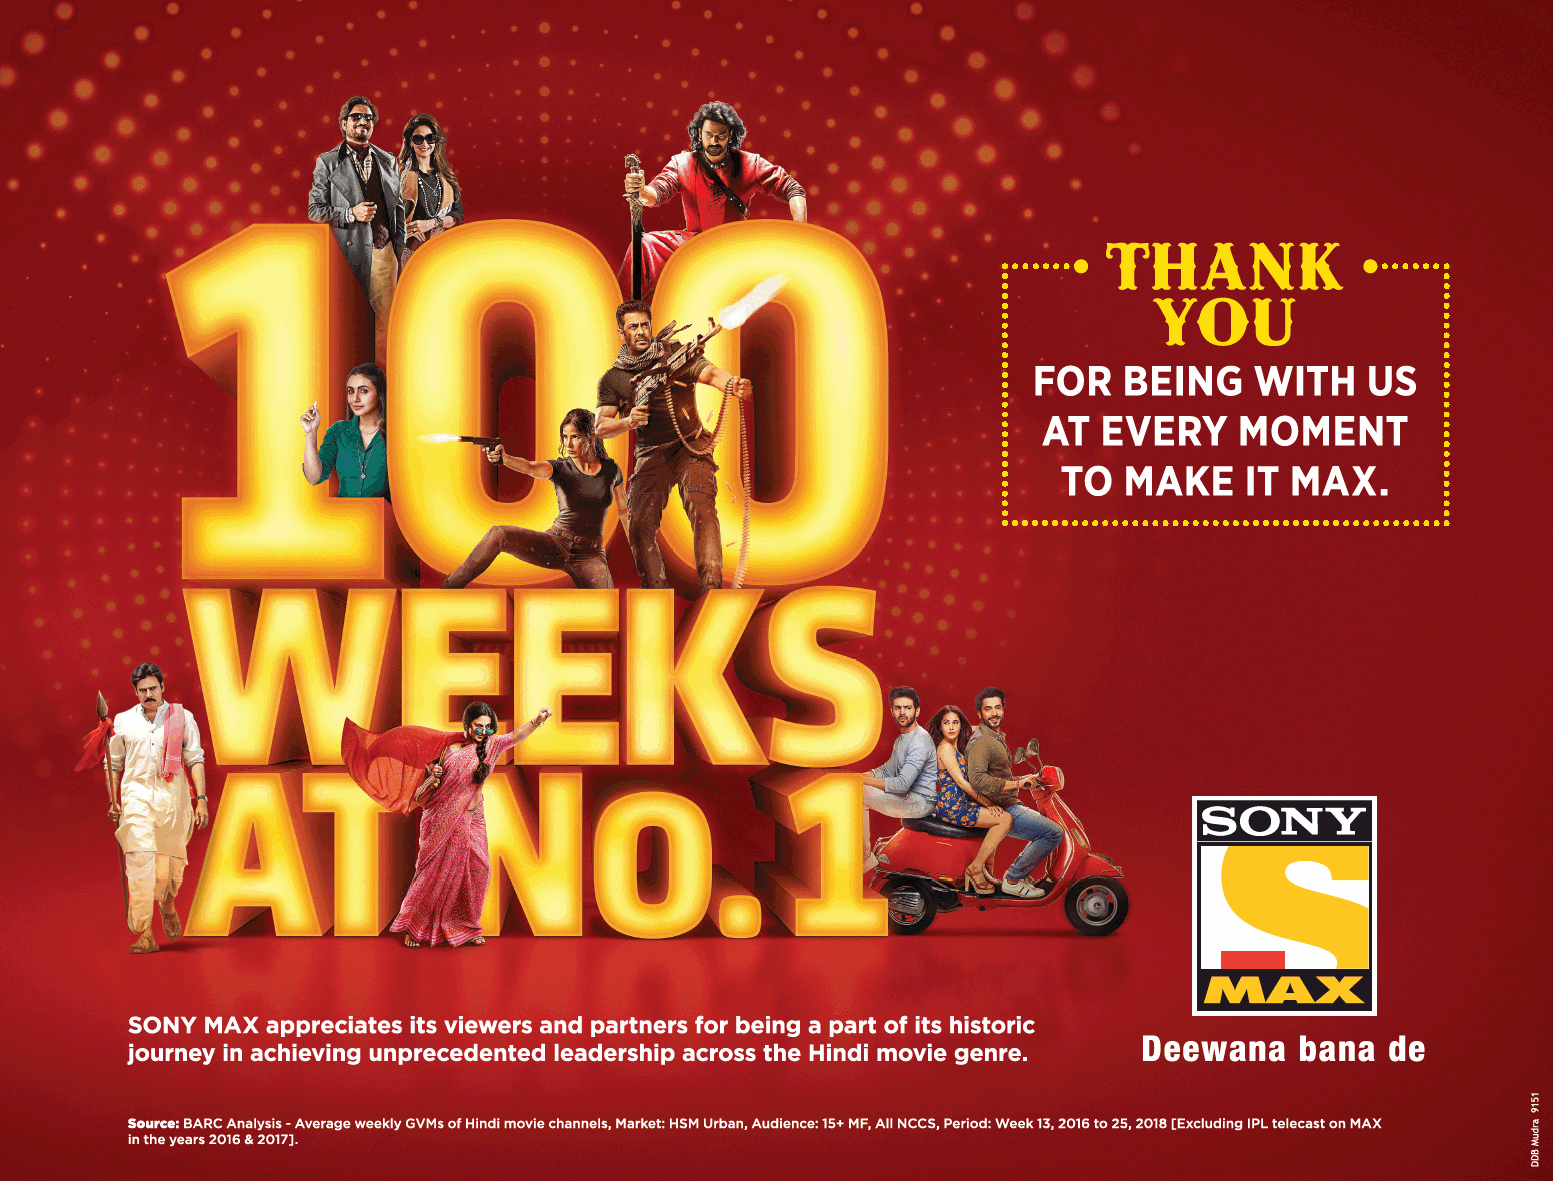 Sony Max Thank You 100 Weeks At No 1 Ad - Advert Gallery